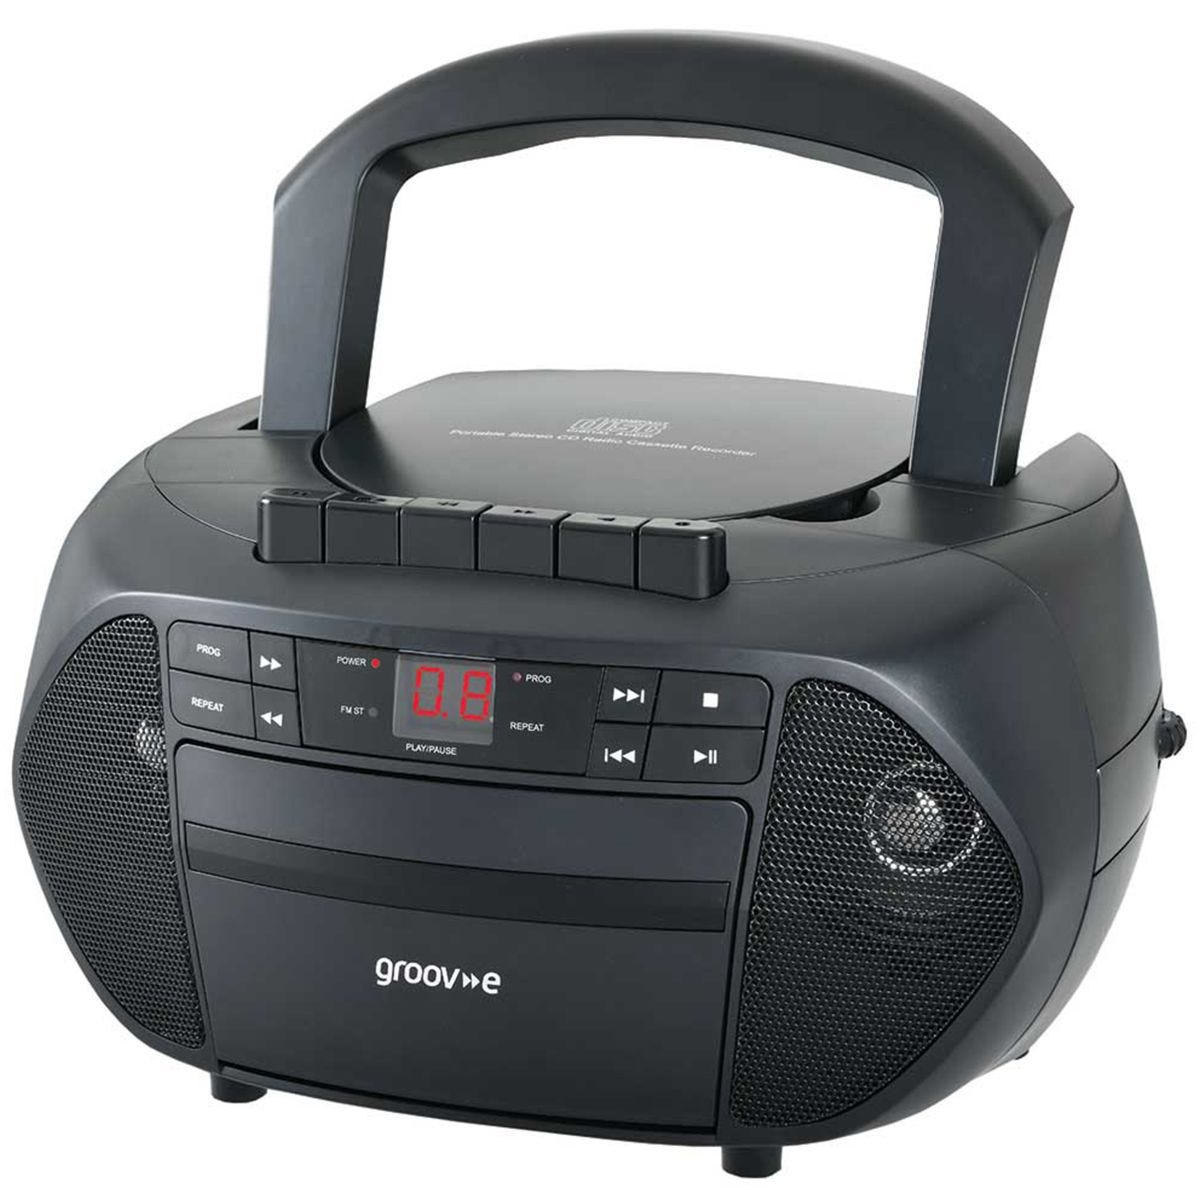 Groov-e Traditional Boombox Portable CD & Cassette Player with FM Radio - Black